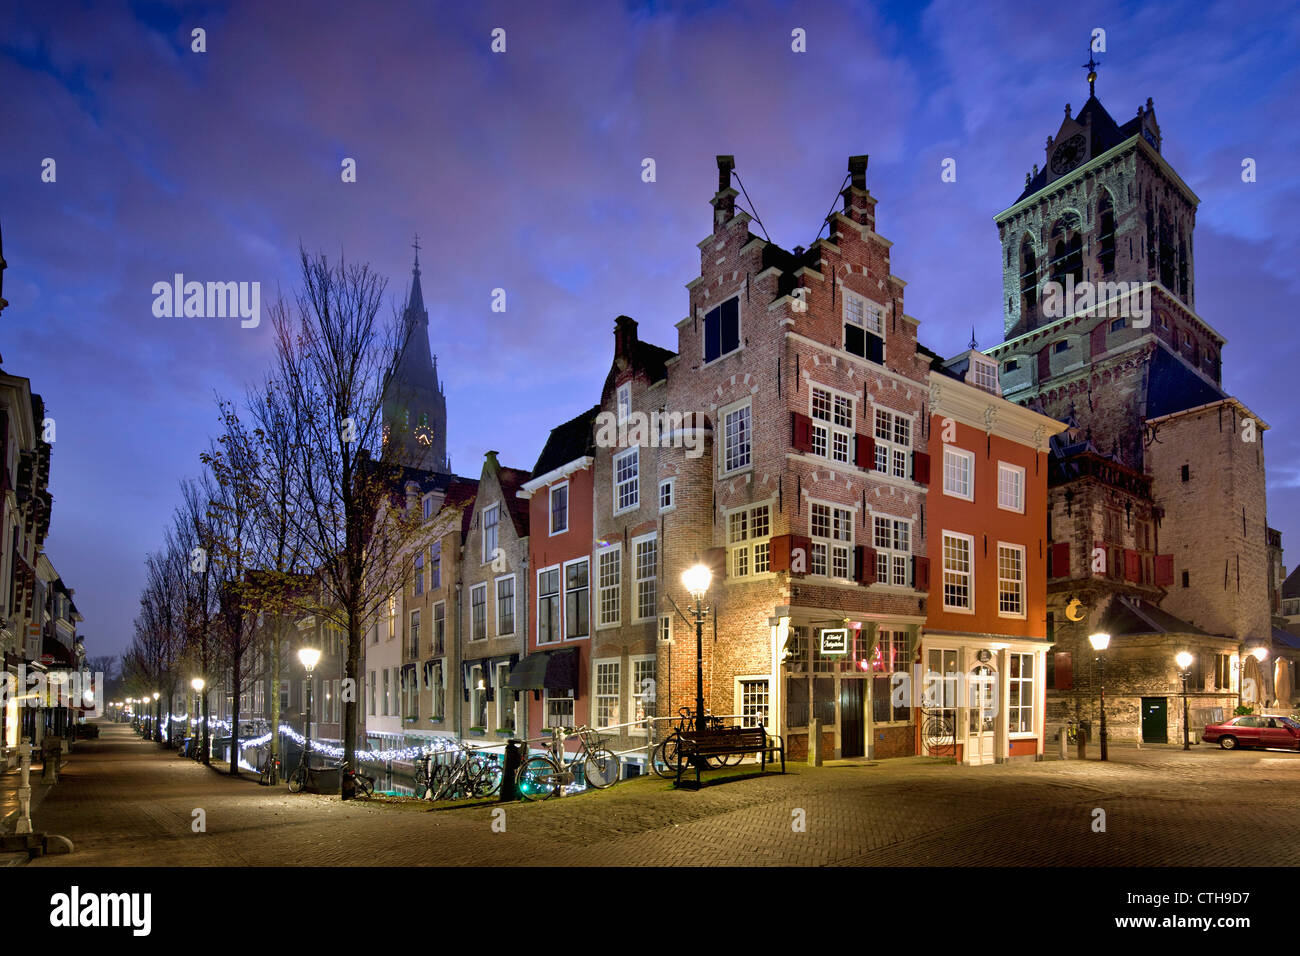 The Netherlands, Delft, Street and canal called Voldersgracht, where painter Johannes Vermeer used to live. Dawn. - Stock Image